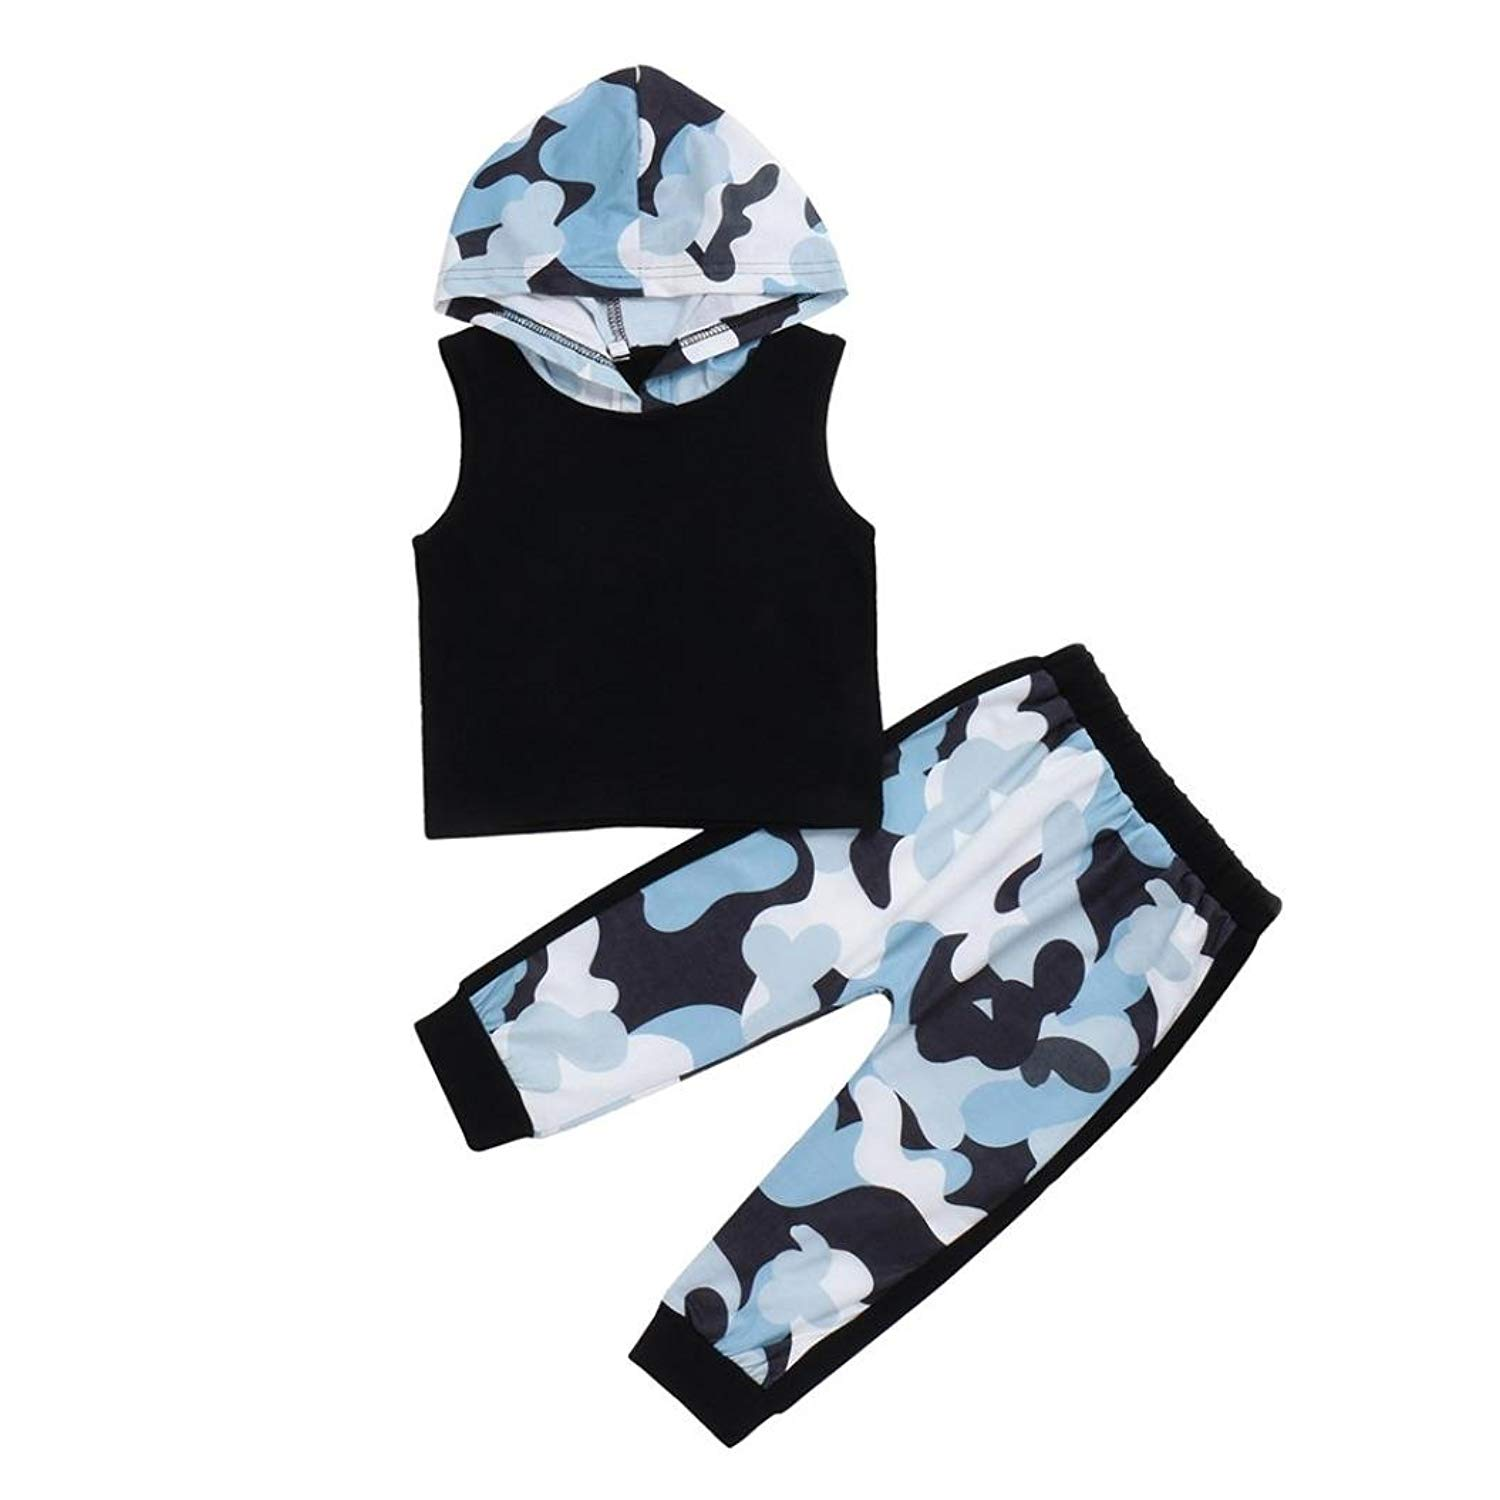 486bab20856 Get Quotations · Moonker Newborn Infant Baby Boys Girls Summer Sets Camo  Print Hoodie Vest Tops and Pants Outfits